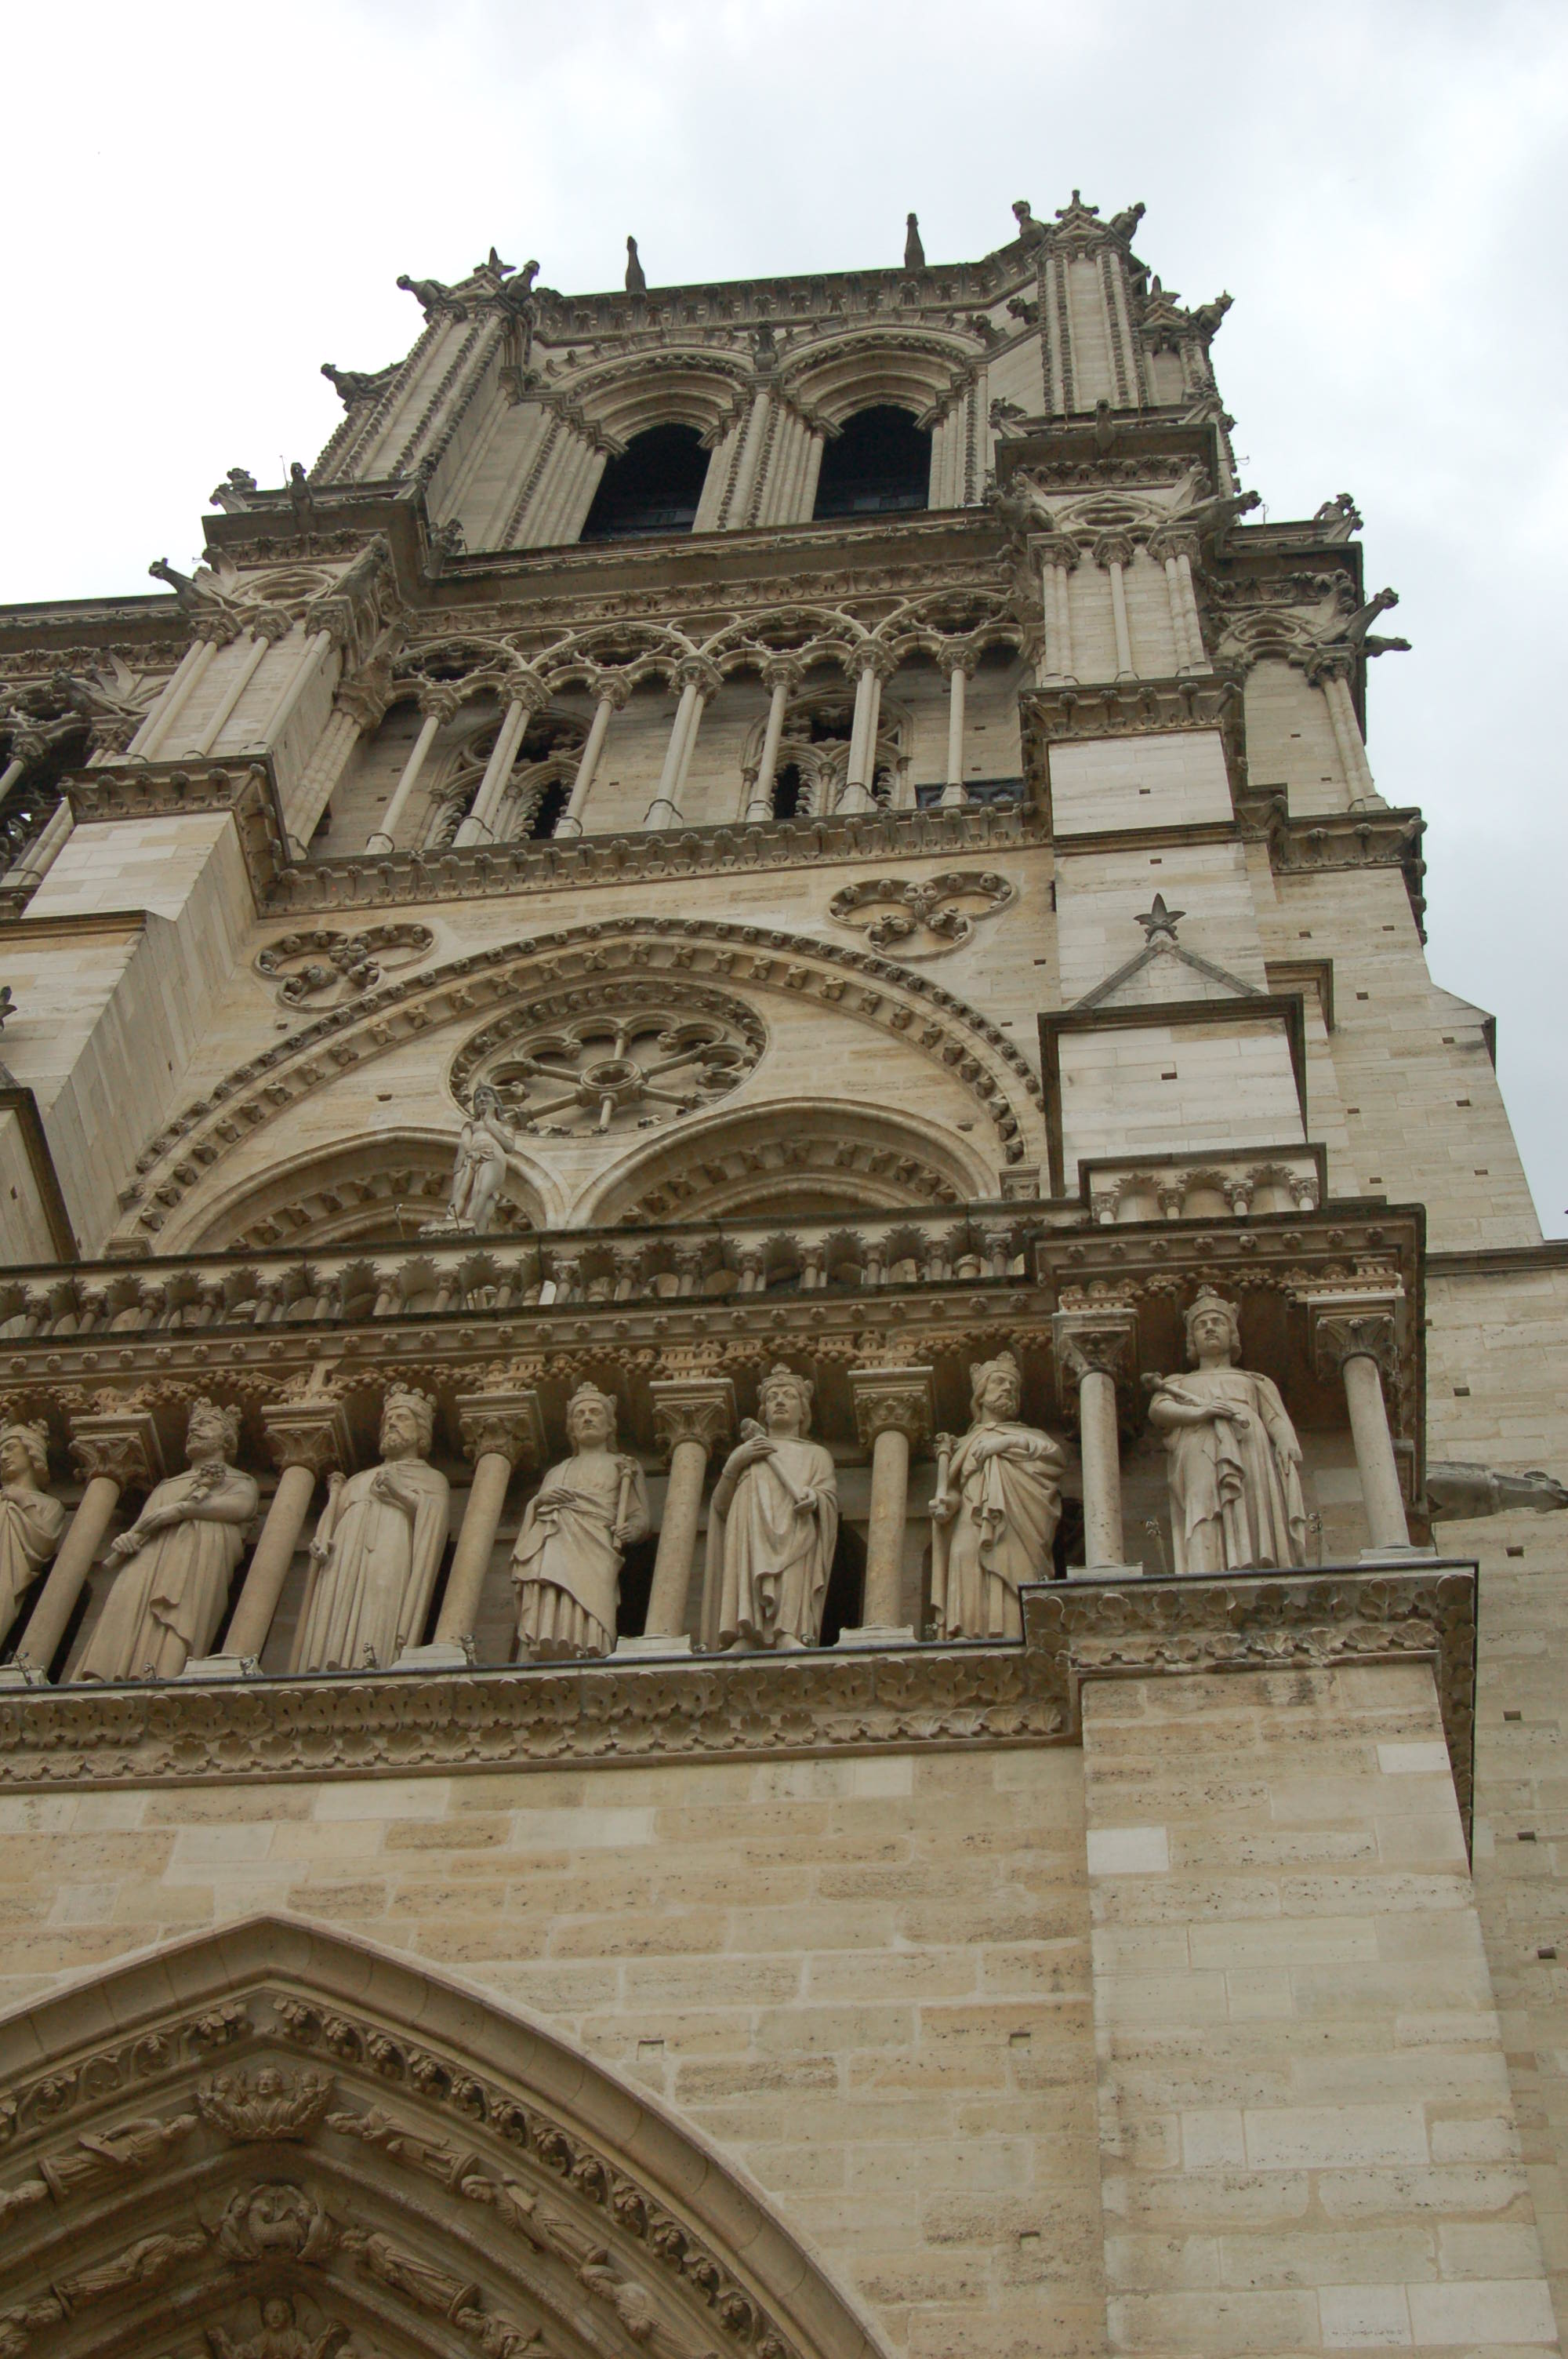 Details of the Notre Dame